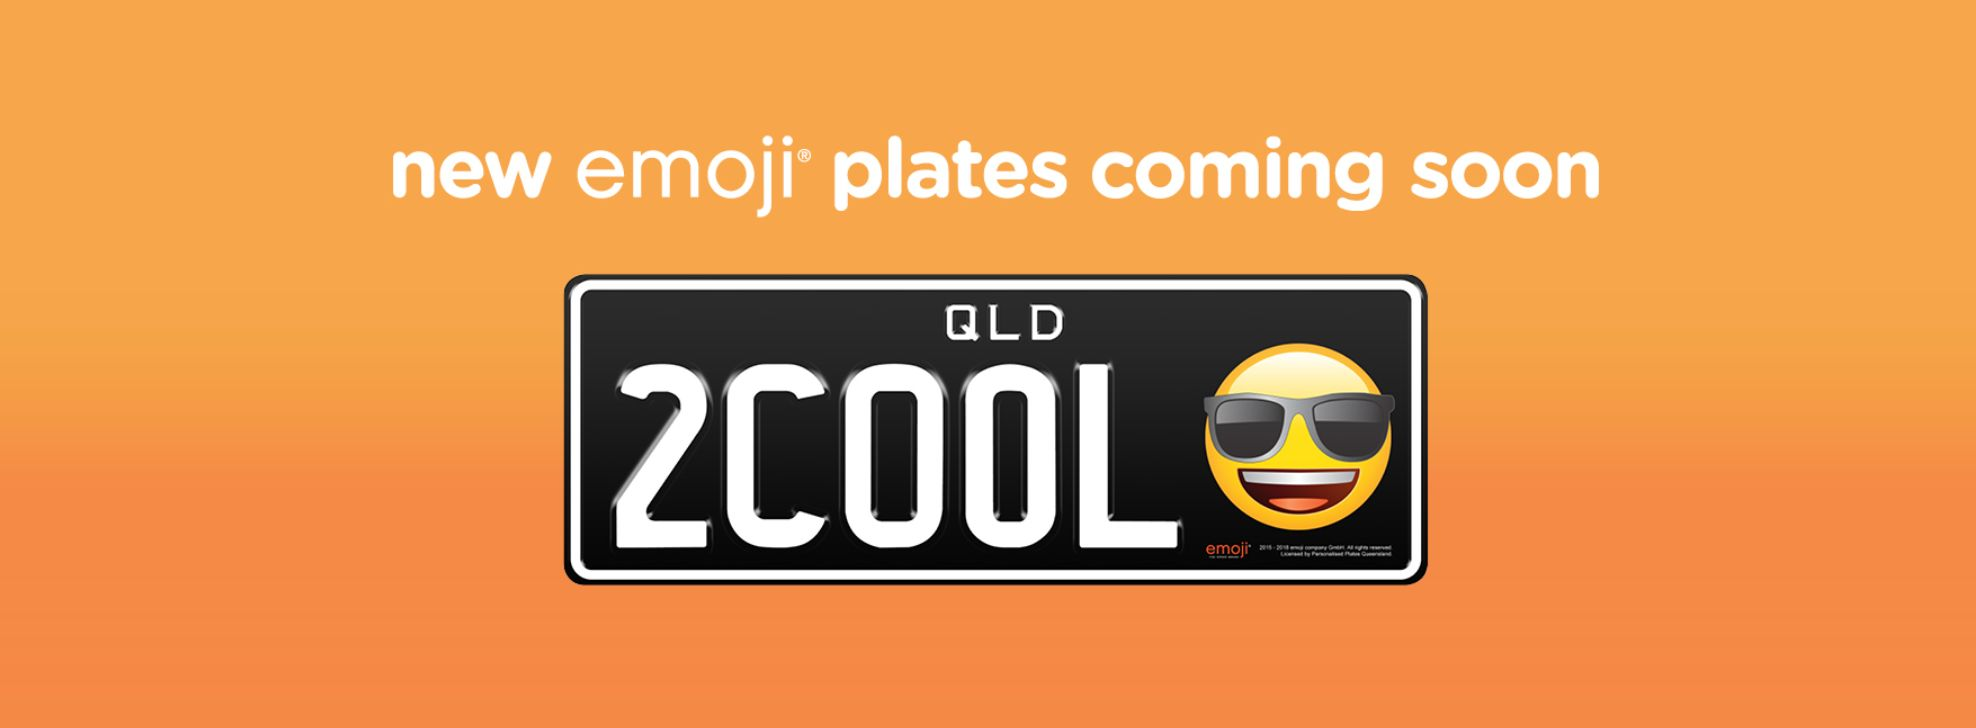 EXPRESS YOURSELF: Aussies Can Now Emoji Their Number Plates With The 'Winky Face' Or 'Heart